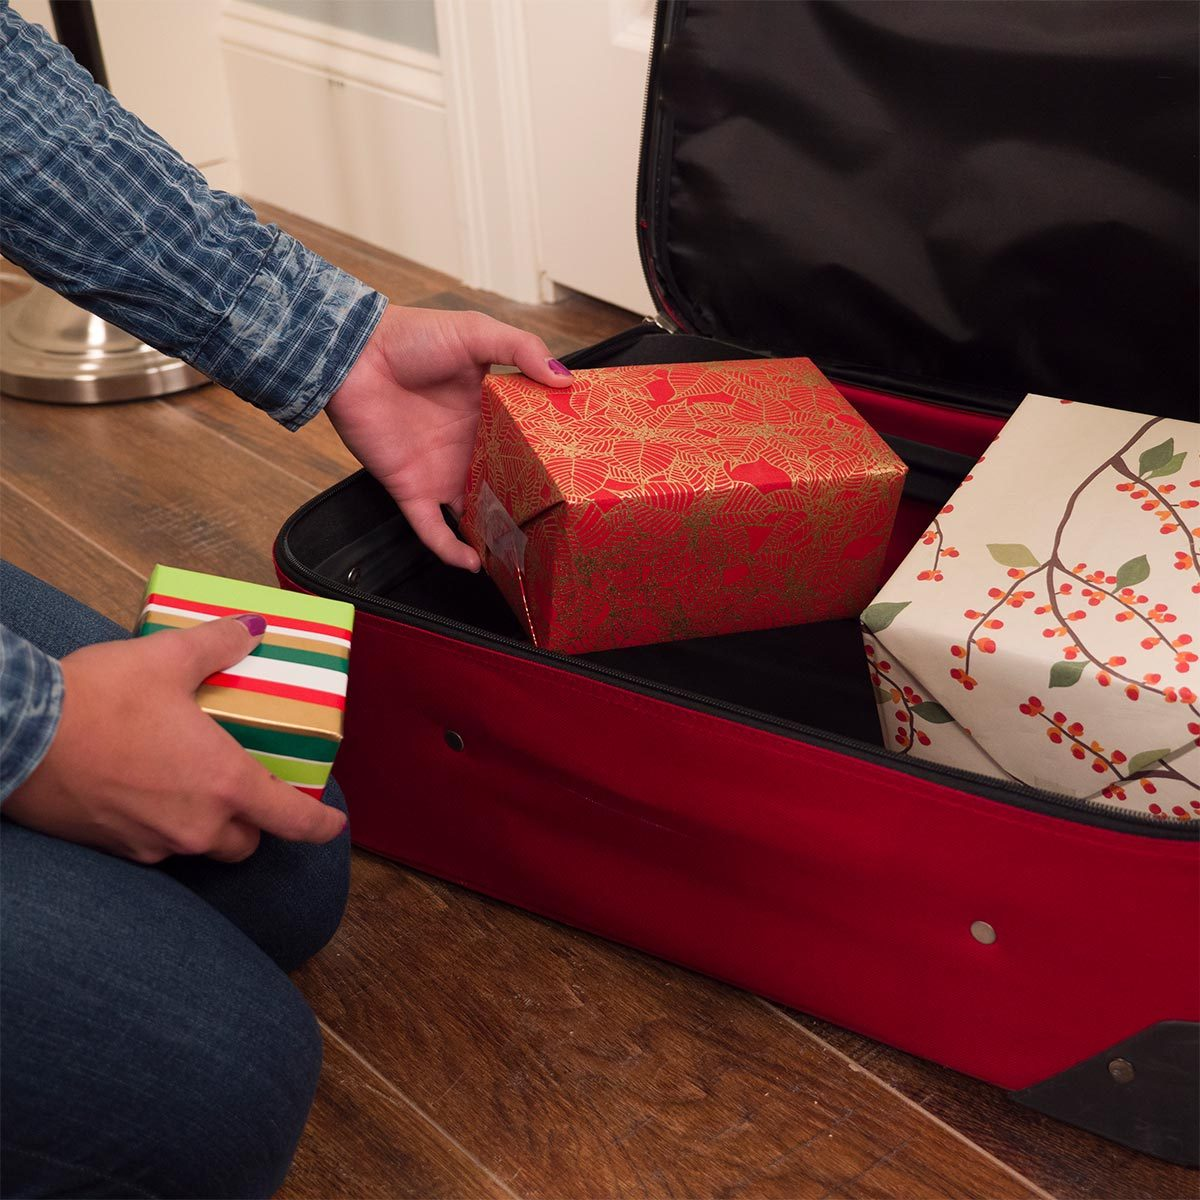 hiding gifts in a suitcase